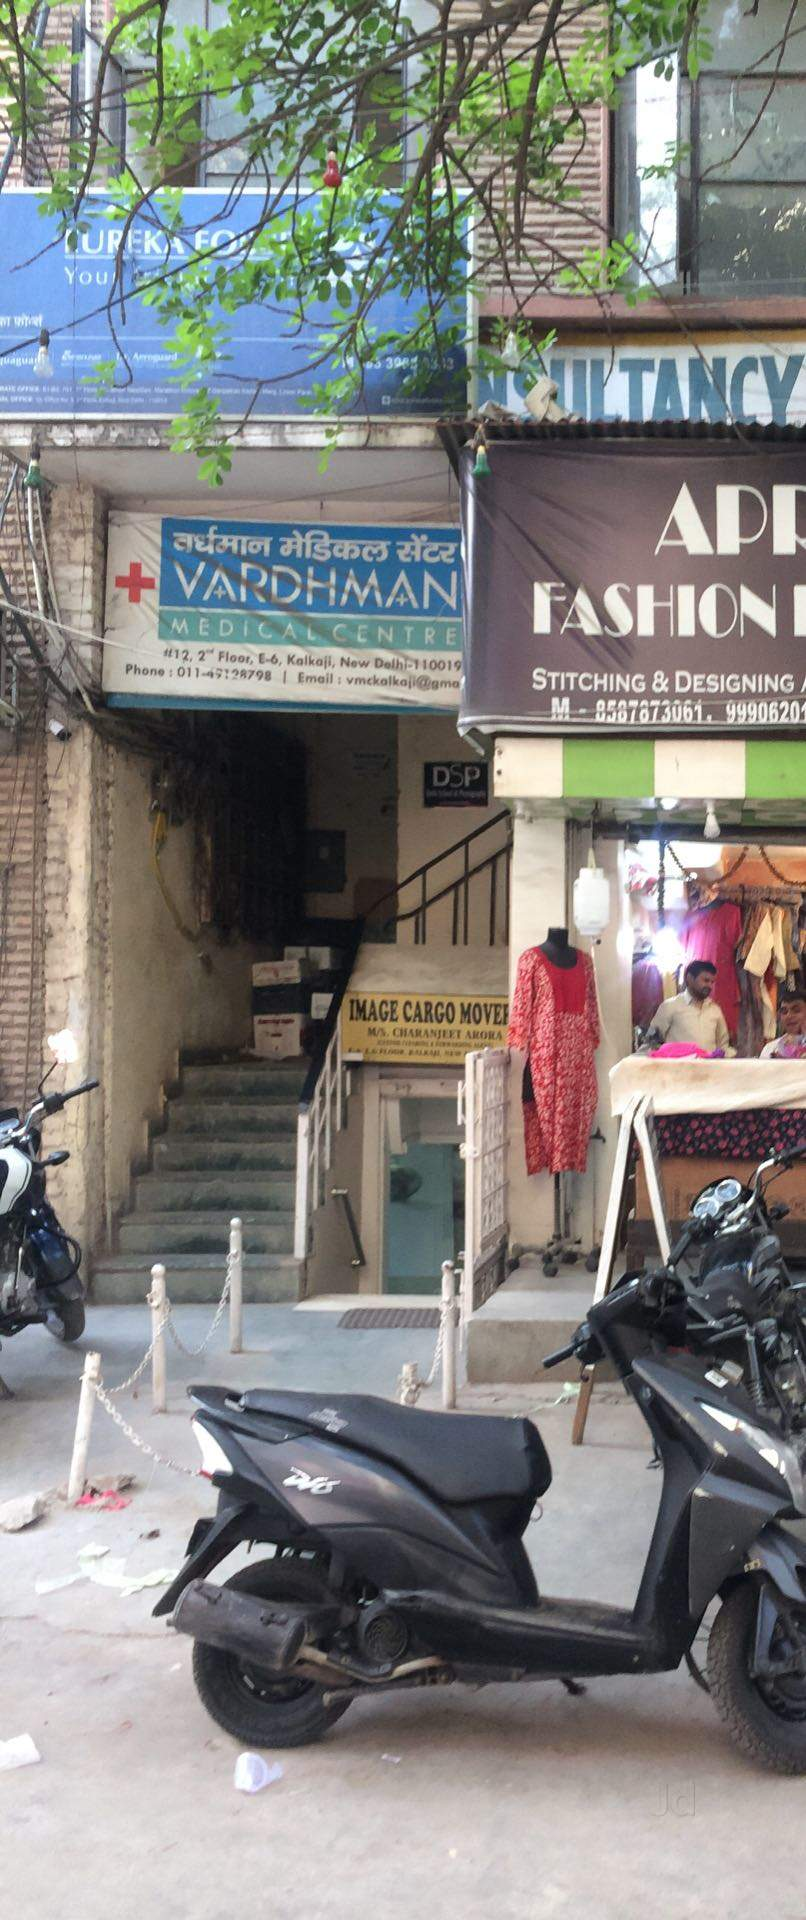 Apri Fashion House Kalkaji Boutiques In Delhi Justdial